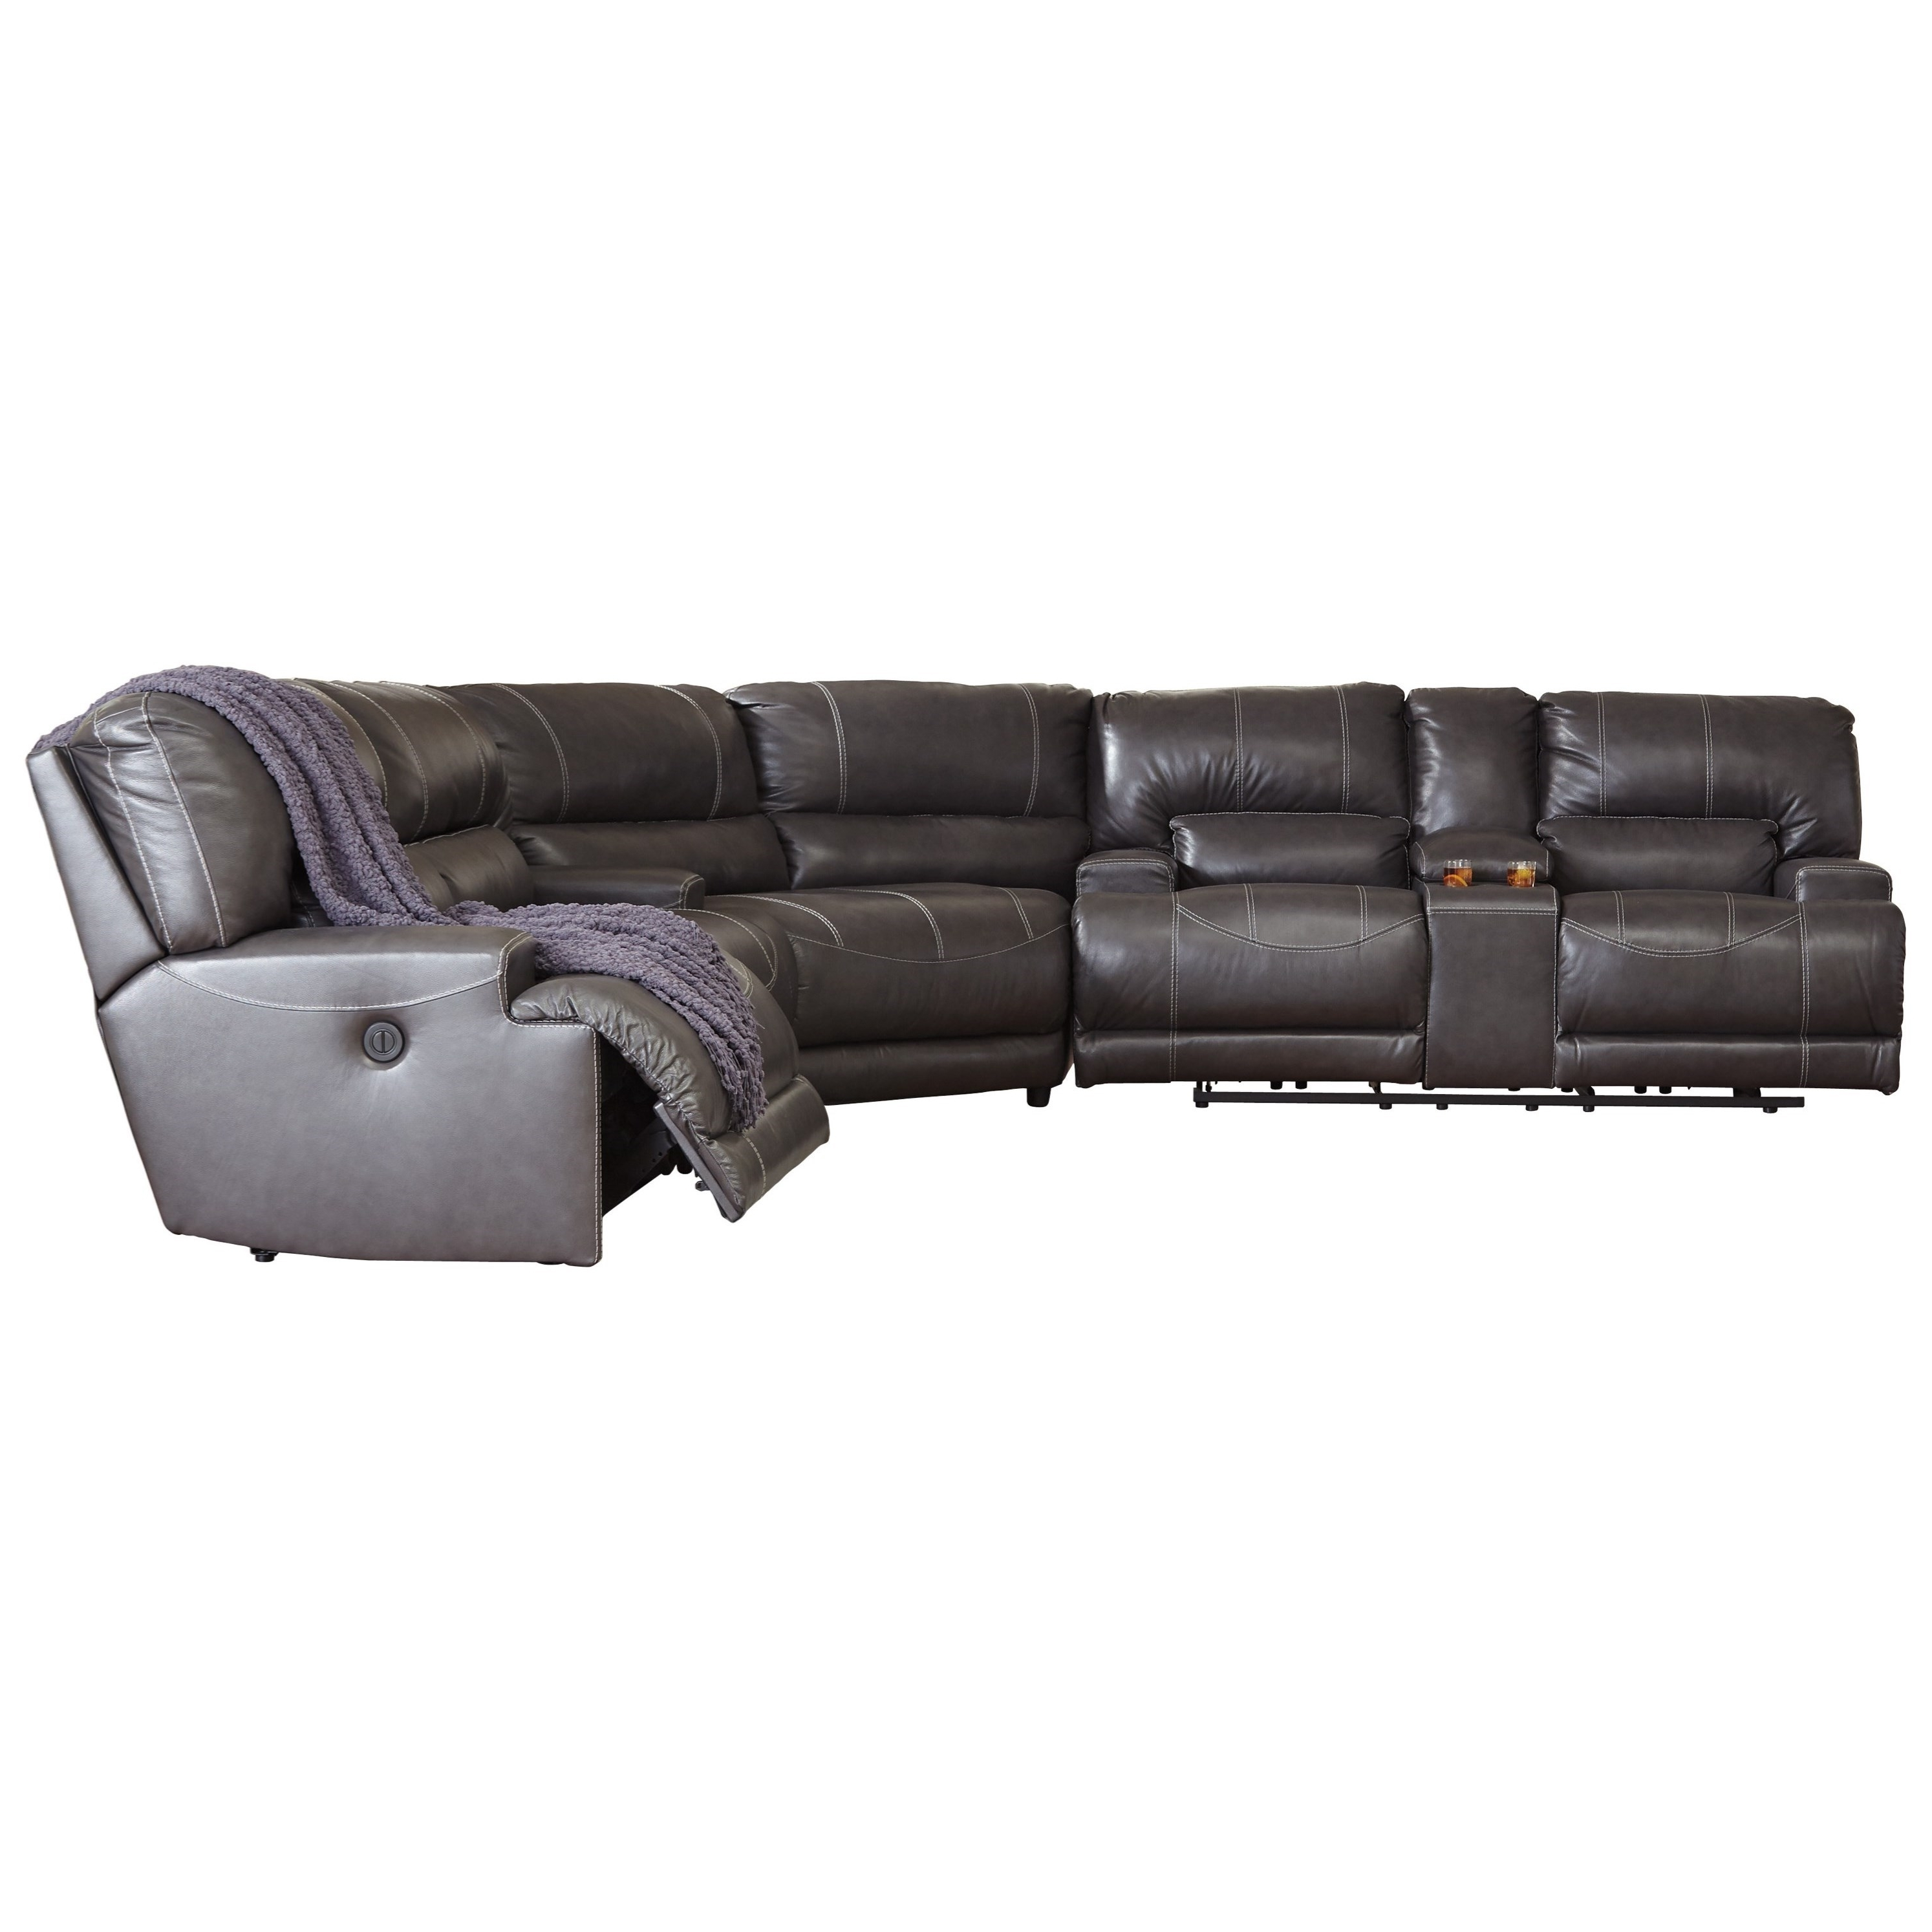 Trendy Signature Designashley Mccaskill Contemporary 3 Piece Leather Throughout Hattiesburg Ms Sectional Sofas (View 19 of 20)